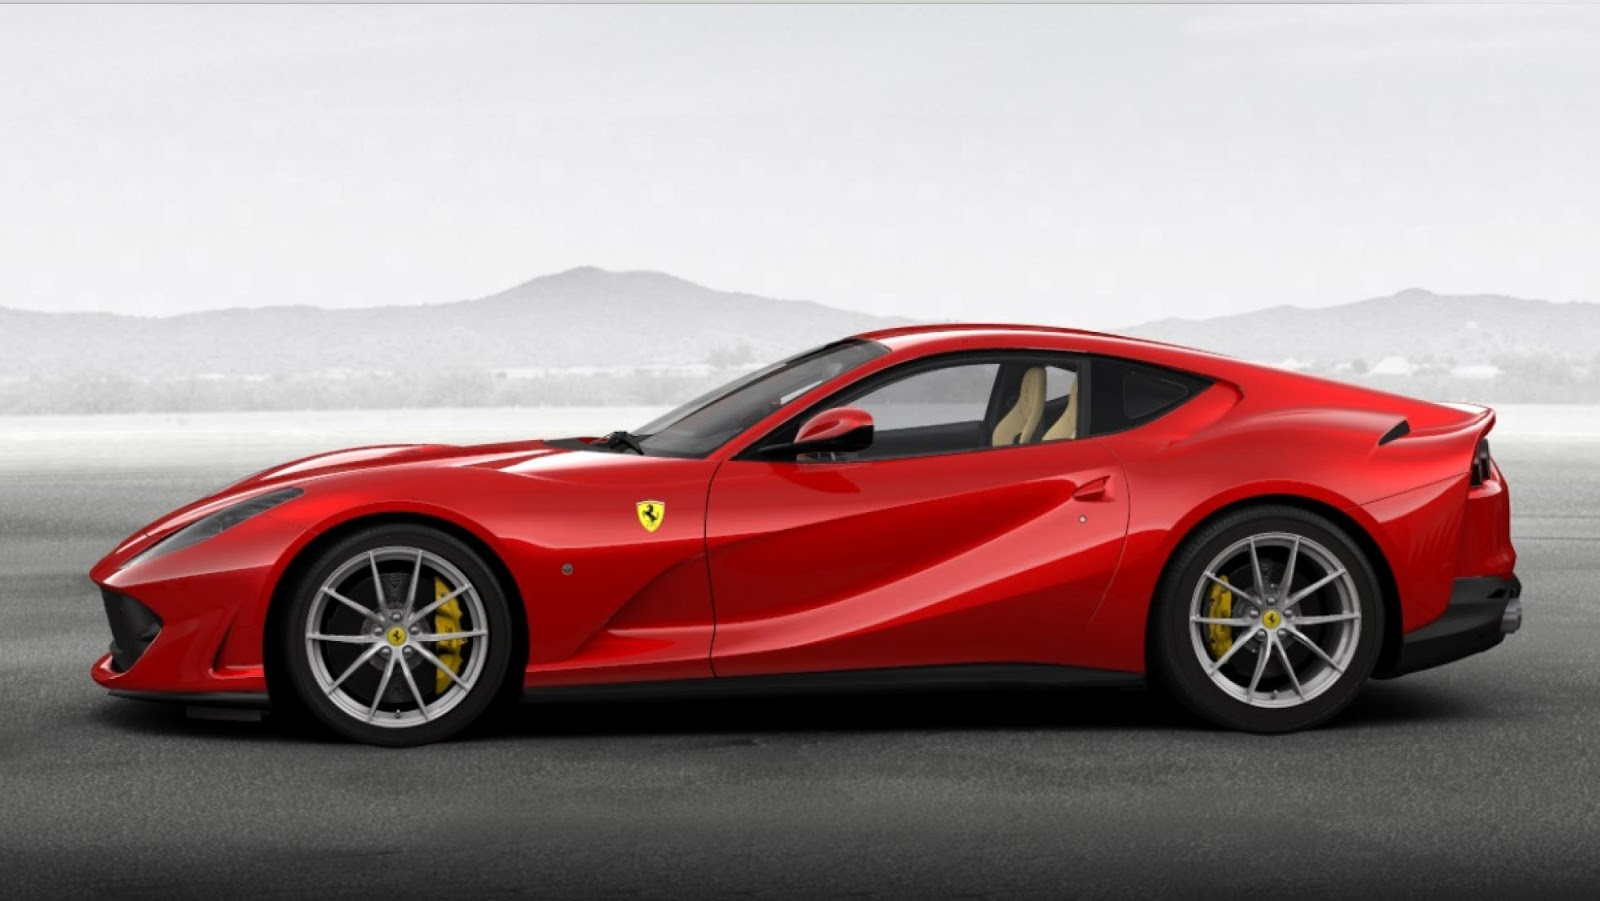 ferrari 39 s 812 superfast configurator is a great time killer carscoops. Black Bedroom Furniture Sets. Home Design Ideas